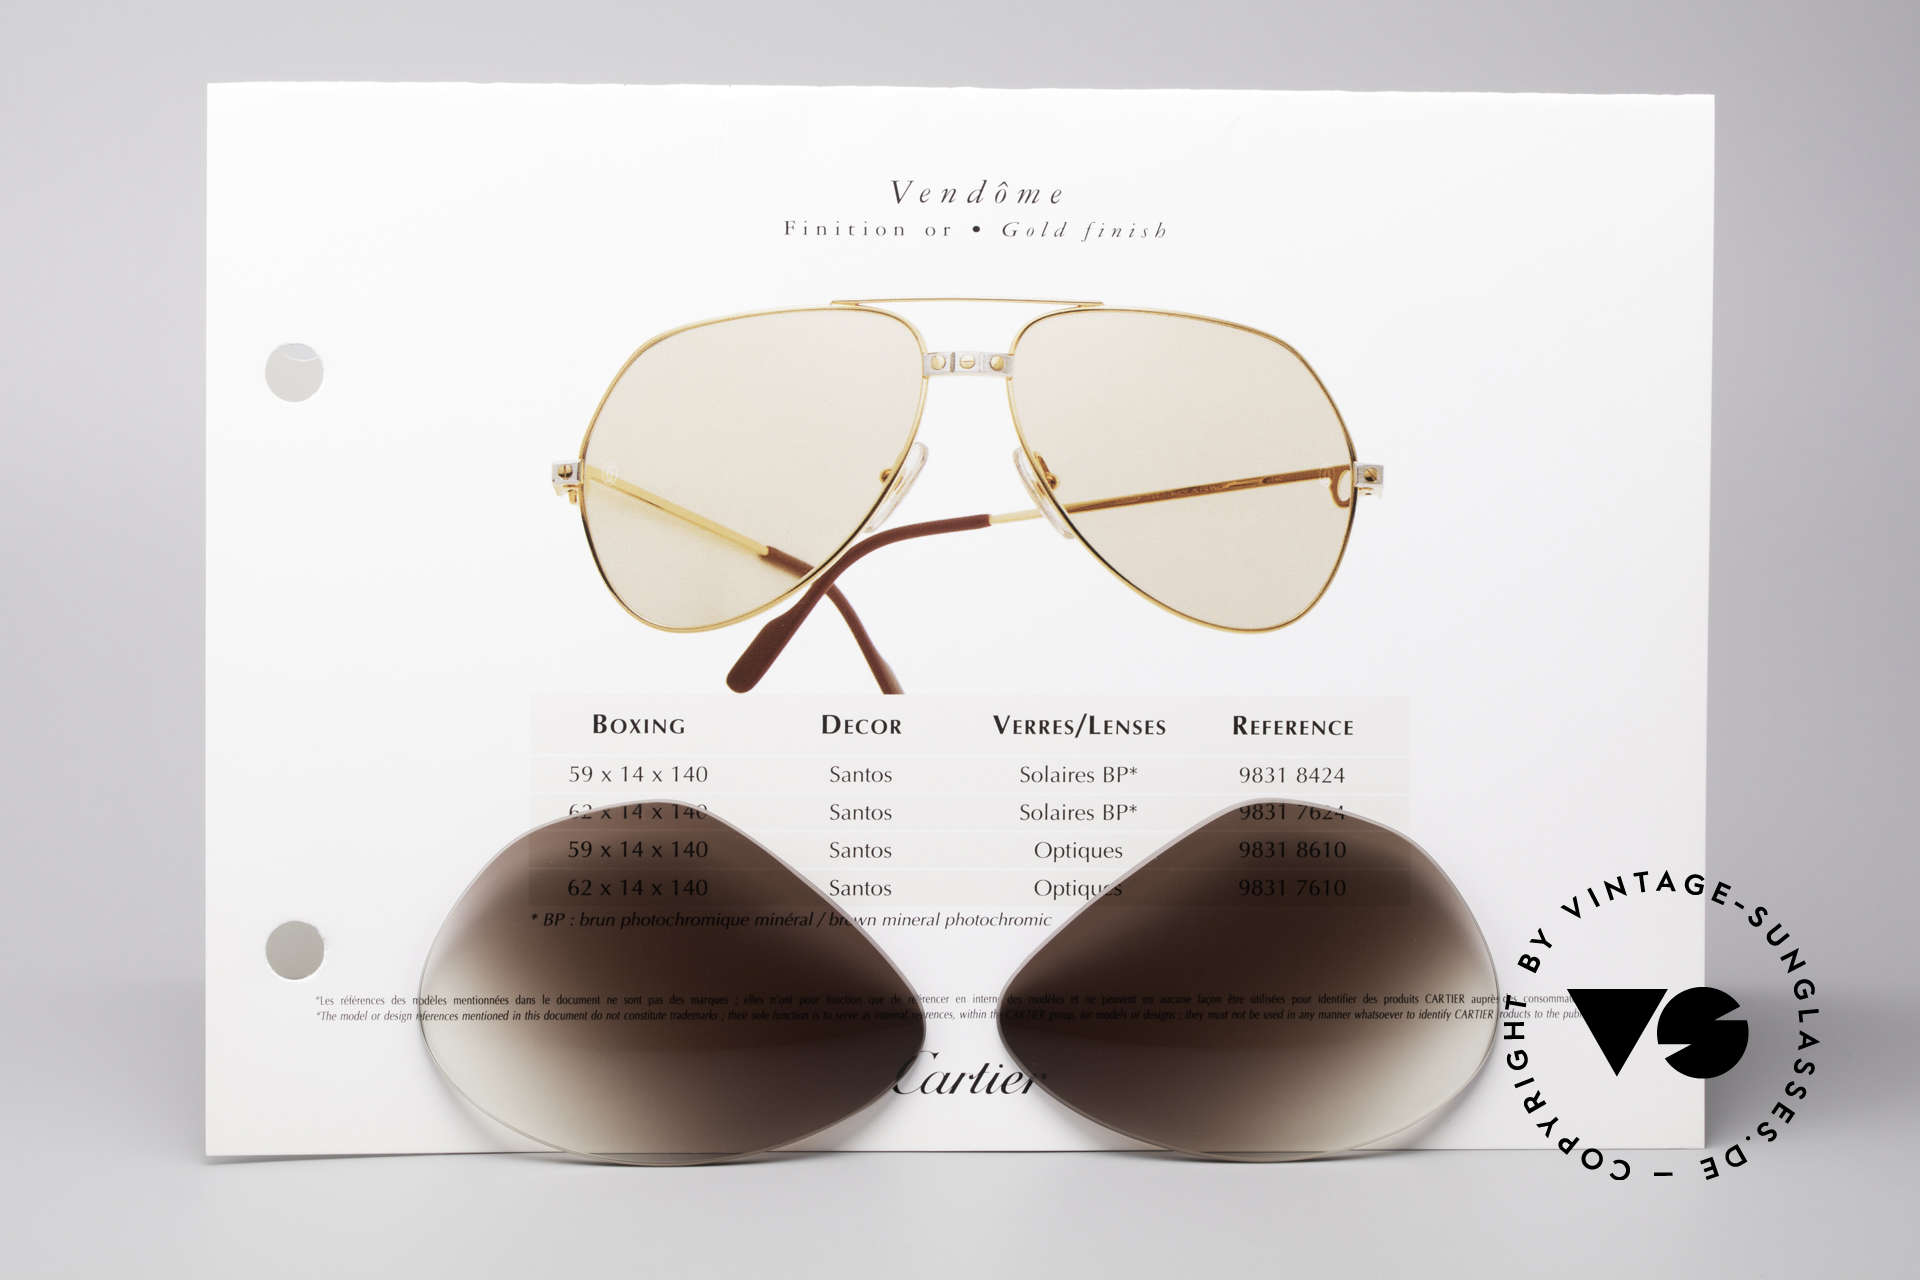 Cartier Vendome Lenses - L Brown Gradient Sun Lenses, elegant brown-gradient tint (wearable at day and night), Made for Men